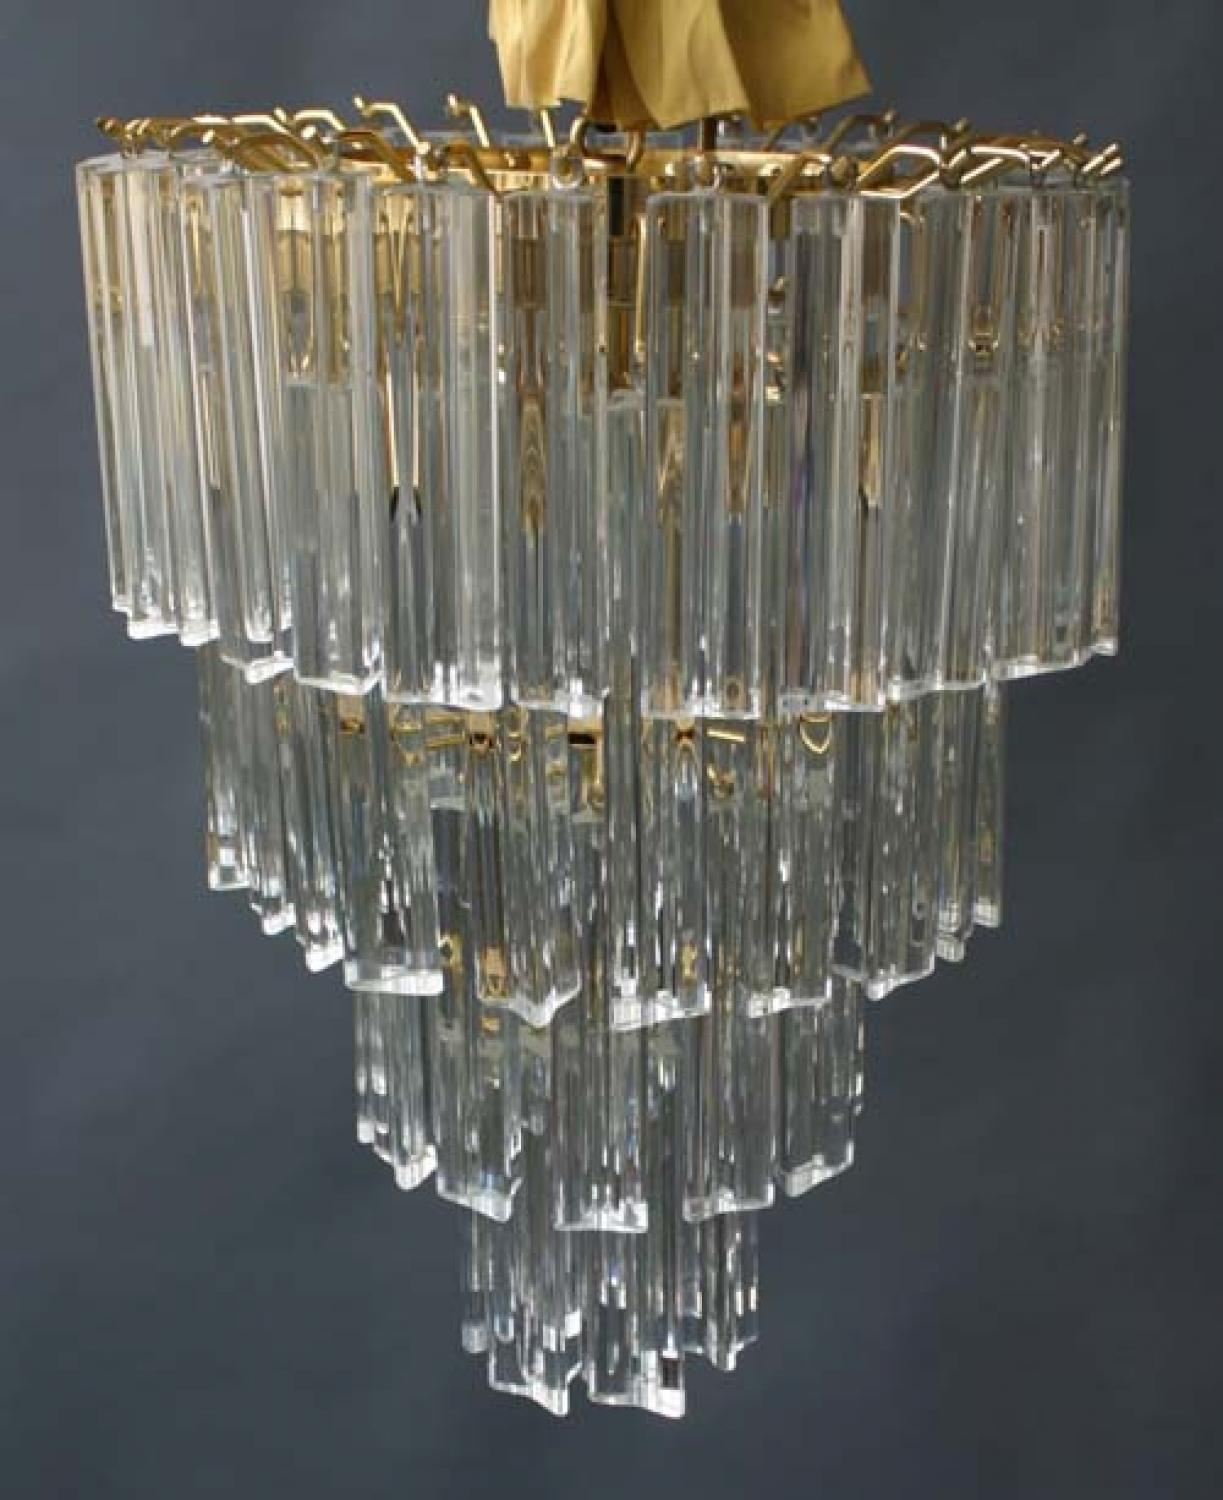 Murano Prism Chandelier: Glass Prisms For Chandeliers